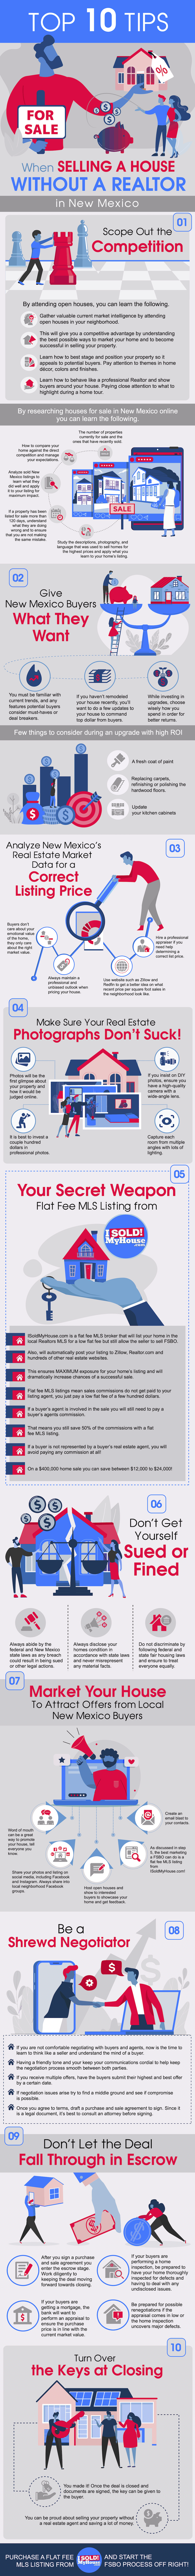 infographic of the 10 steps to sell a house in new mexico without an agent